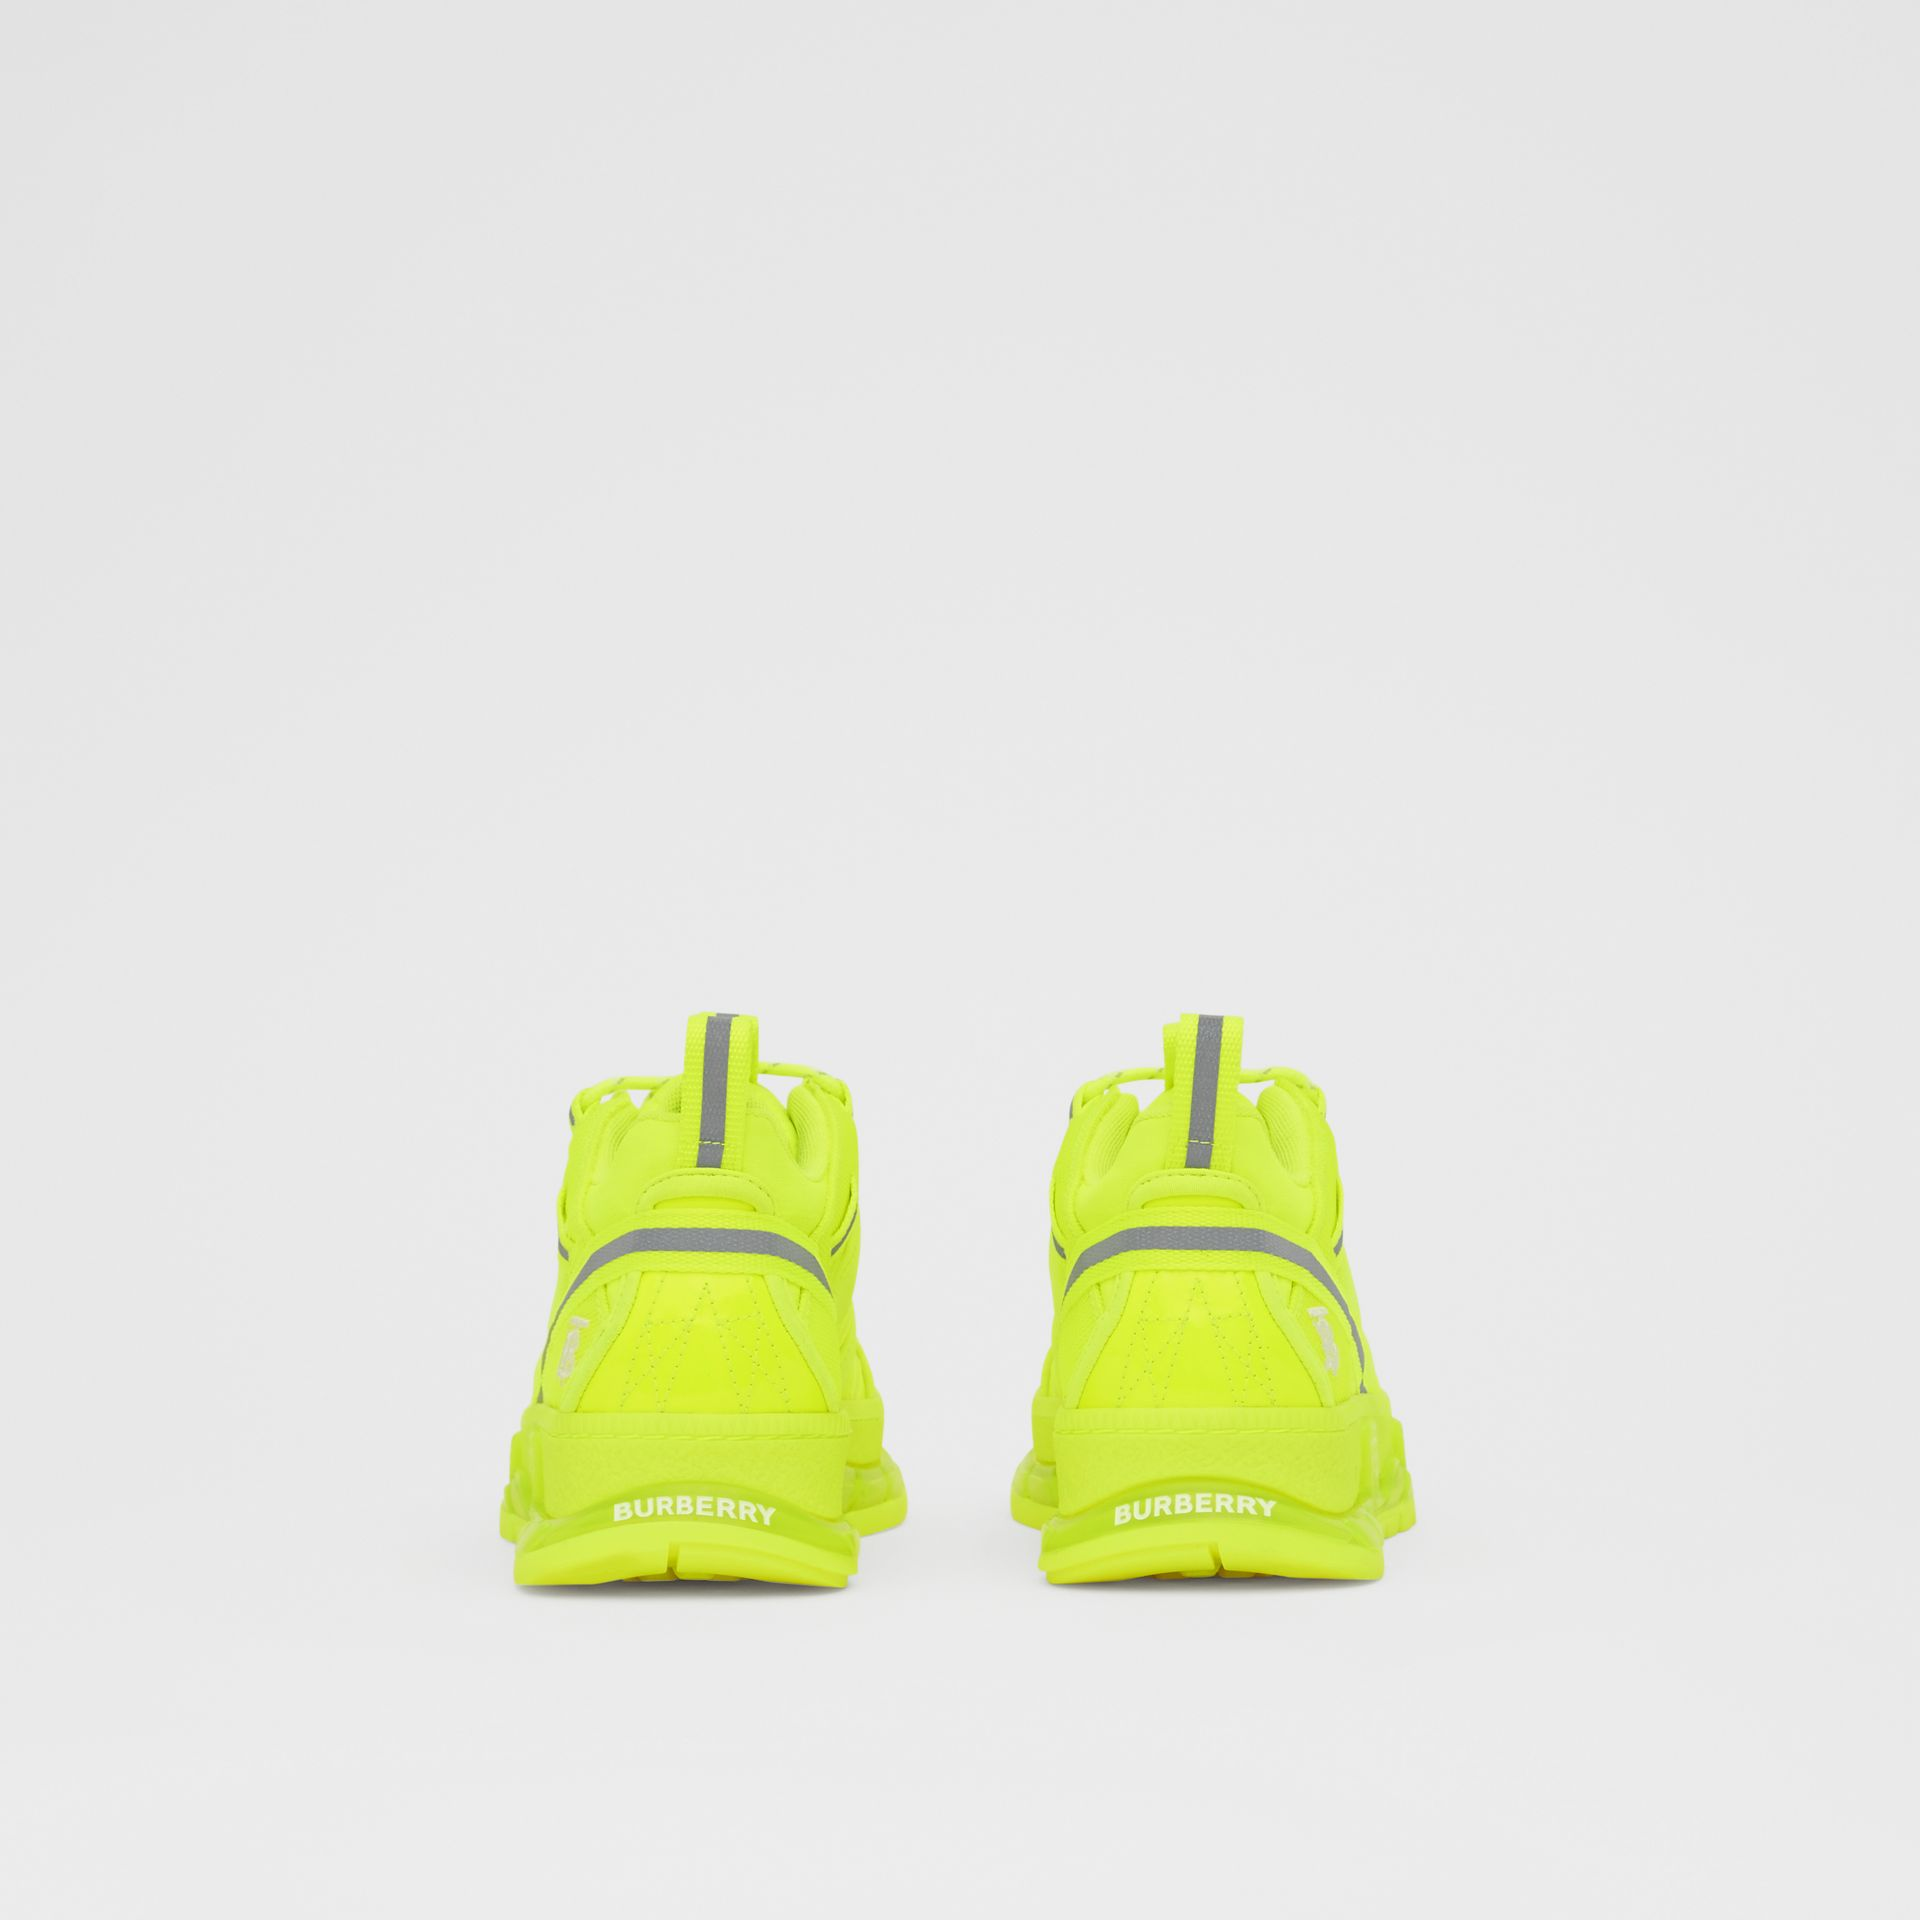 Nylon and Cotton Union Sneakers in Fluorescent Yellow - Women | Burberry - gallery image 4